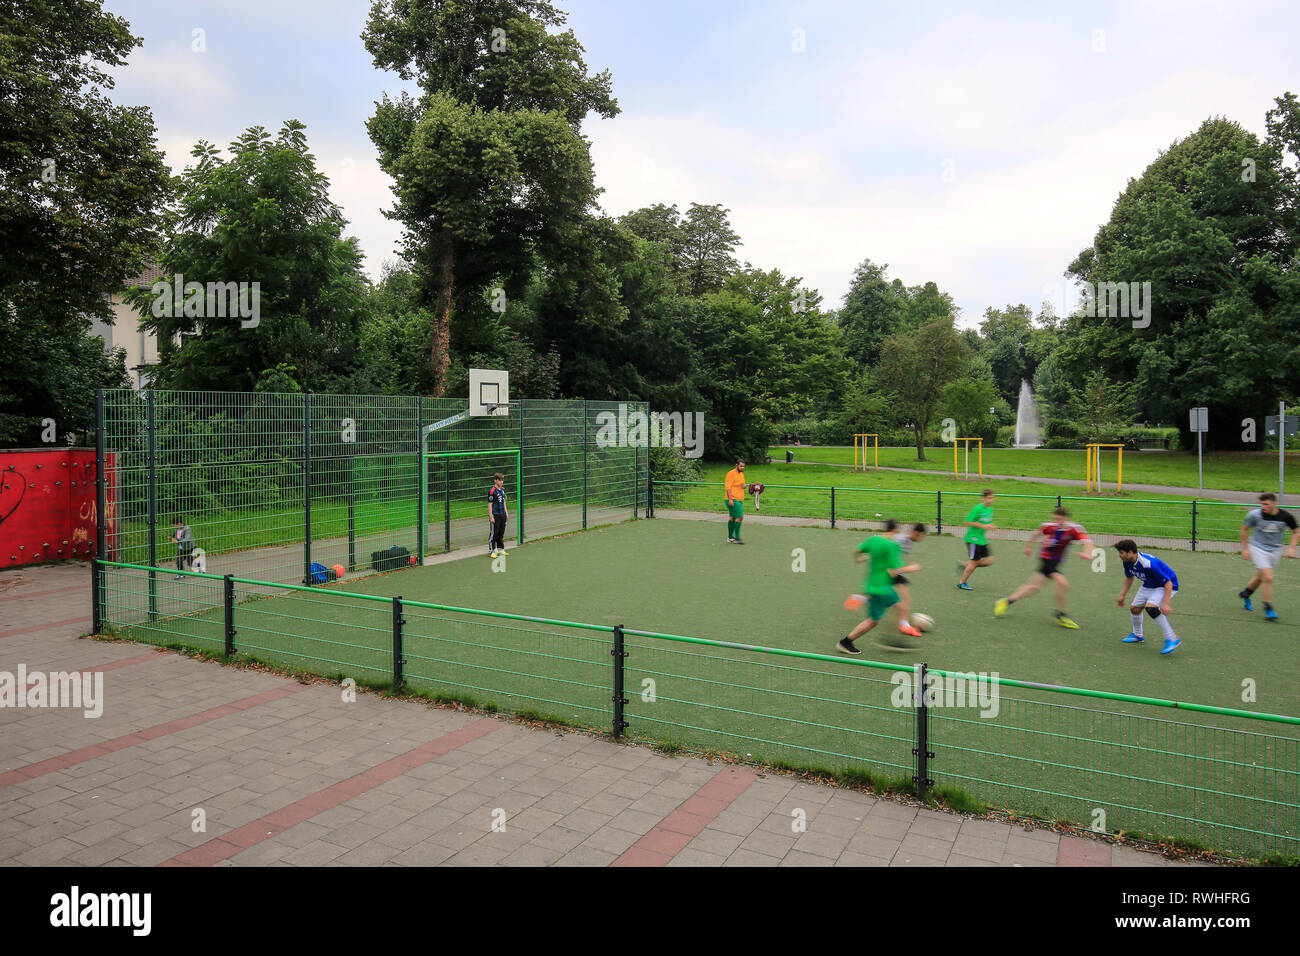 Essen, North Rhine-Westphalia, Ruhr area, Germany - young people play football on the football field in the Kaiser Wilhelm Park in Altenessen, here on - Stock Image